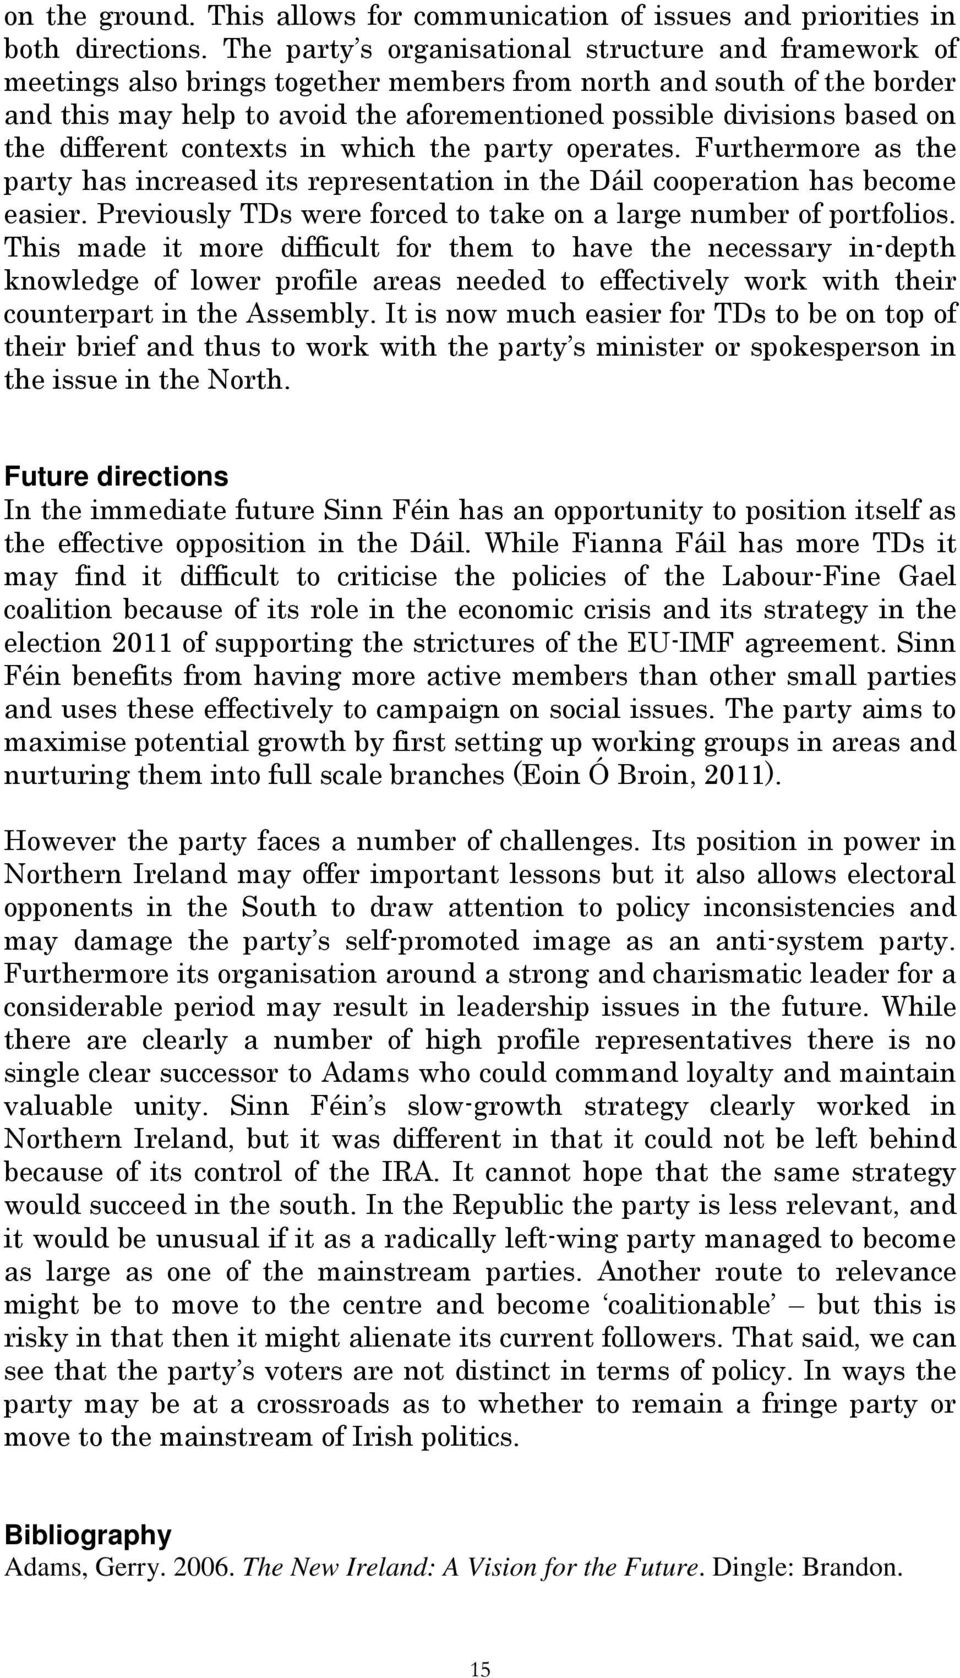 on the different contexts in which the party operates. Furthermore as the party has increased its representation in the Dáil cooperation has become easier.